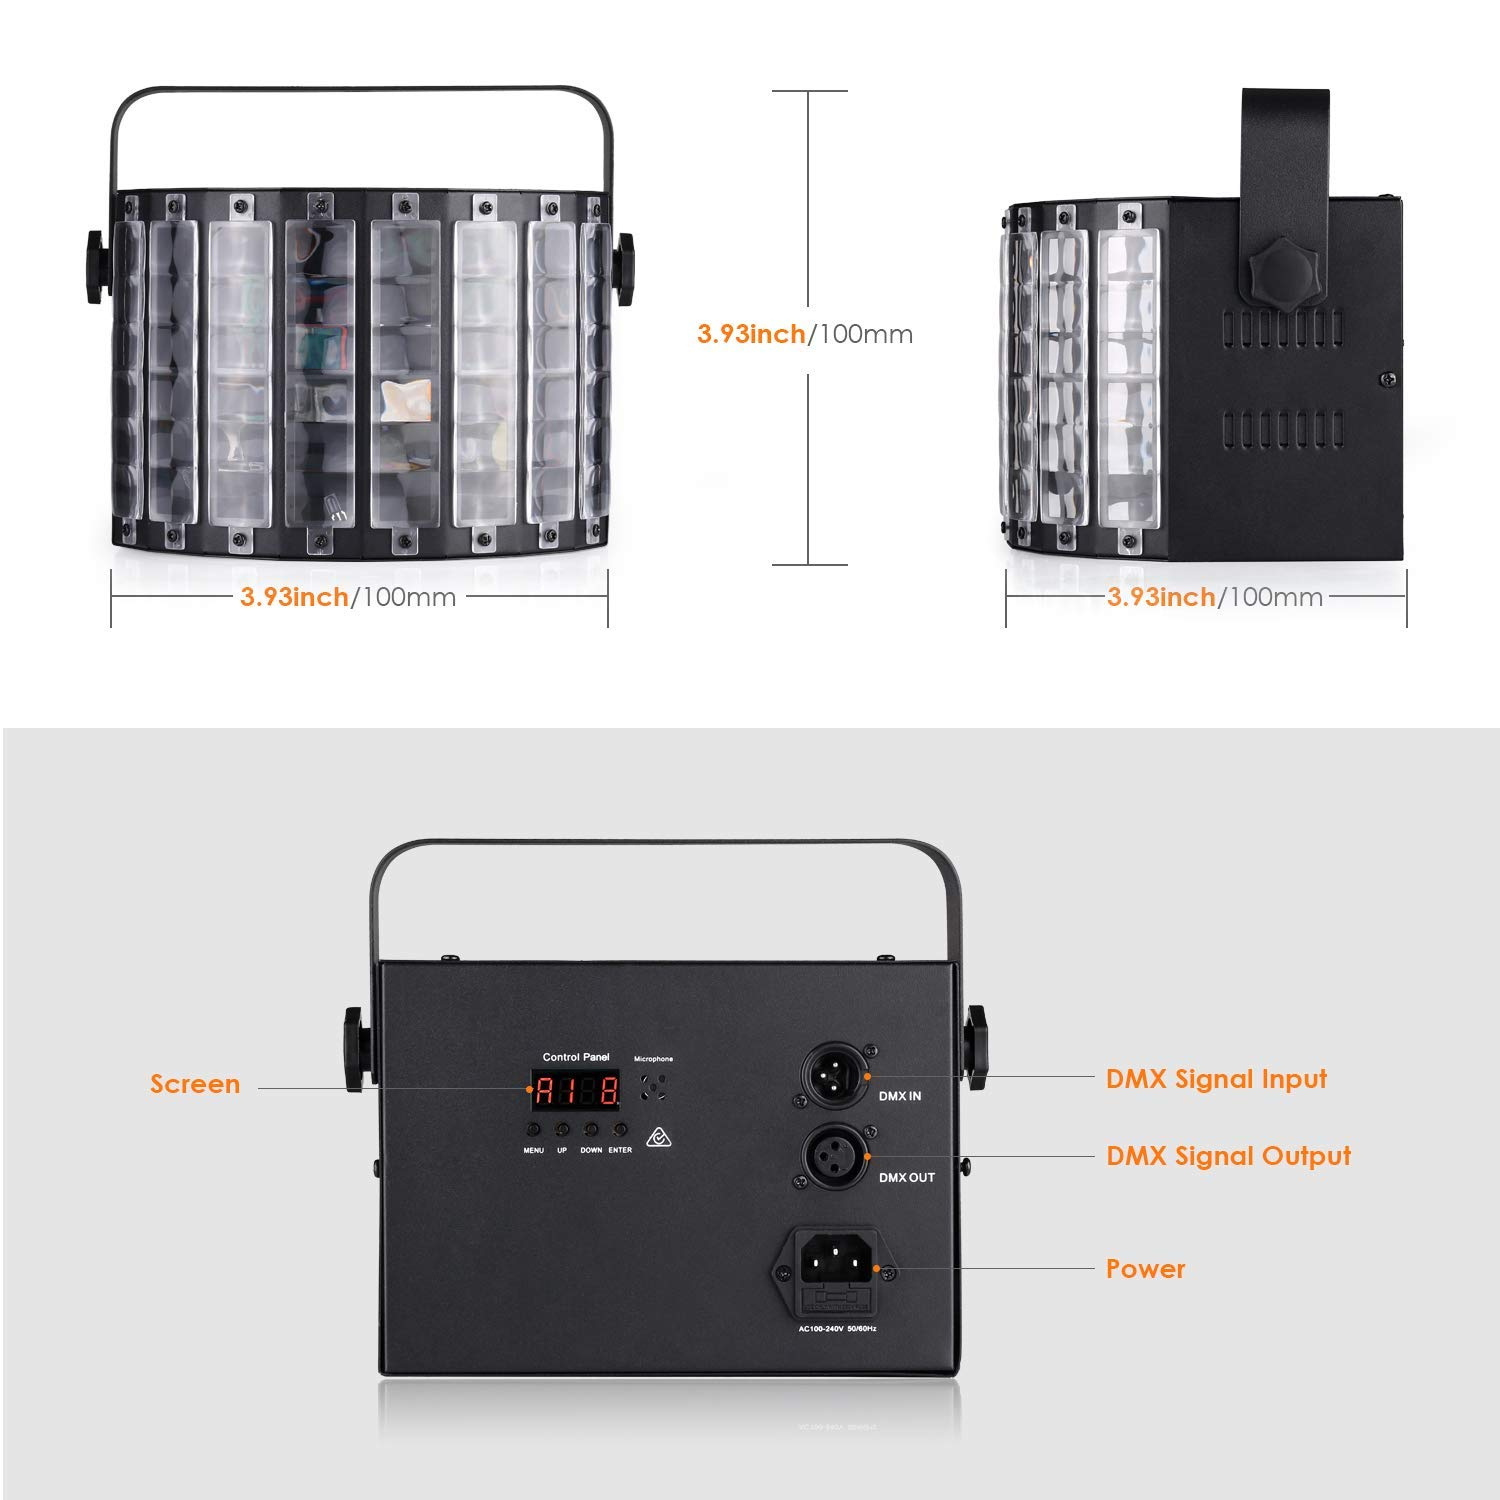 Dmx 512 Strobe Flash Light 1500w Strobe Light 220-240v Strobe Light Back To Search Resultslights & Lighting